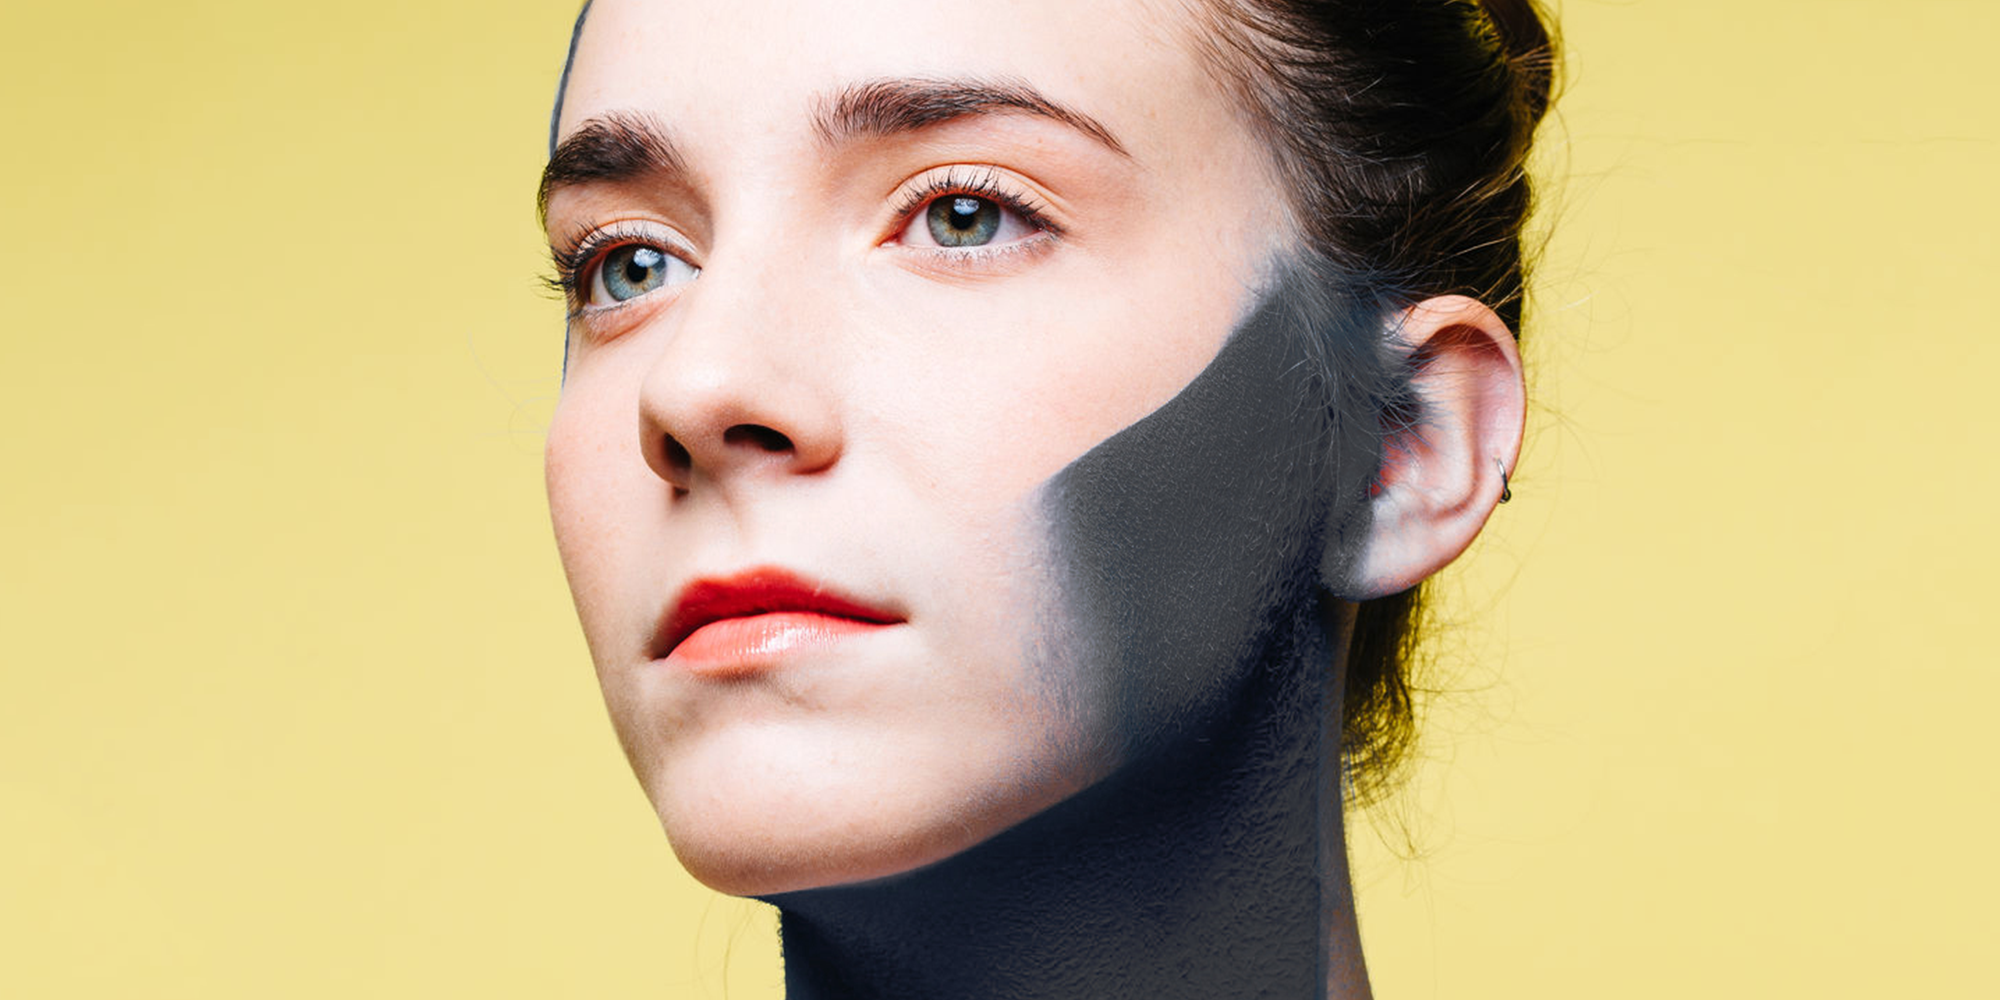 5 Charcoal Face Masks Your Oily, Broken-Out Skin Needs